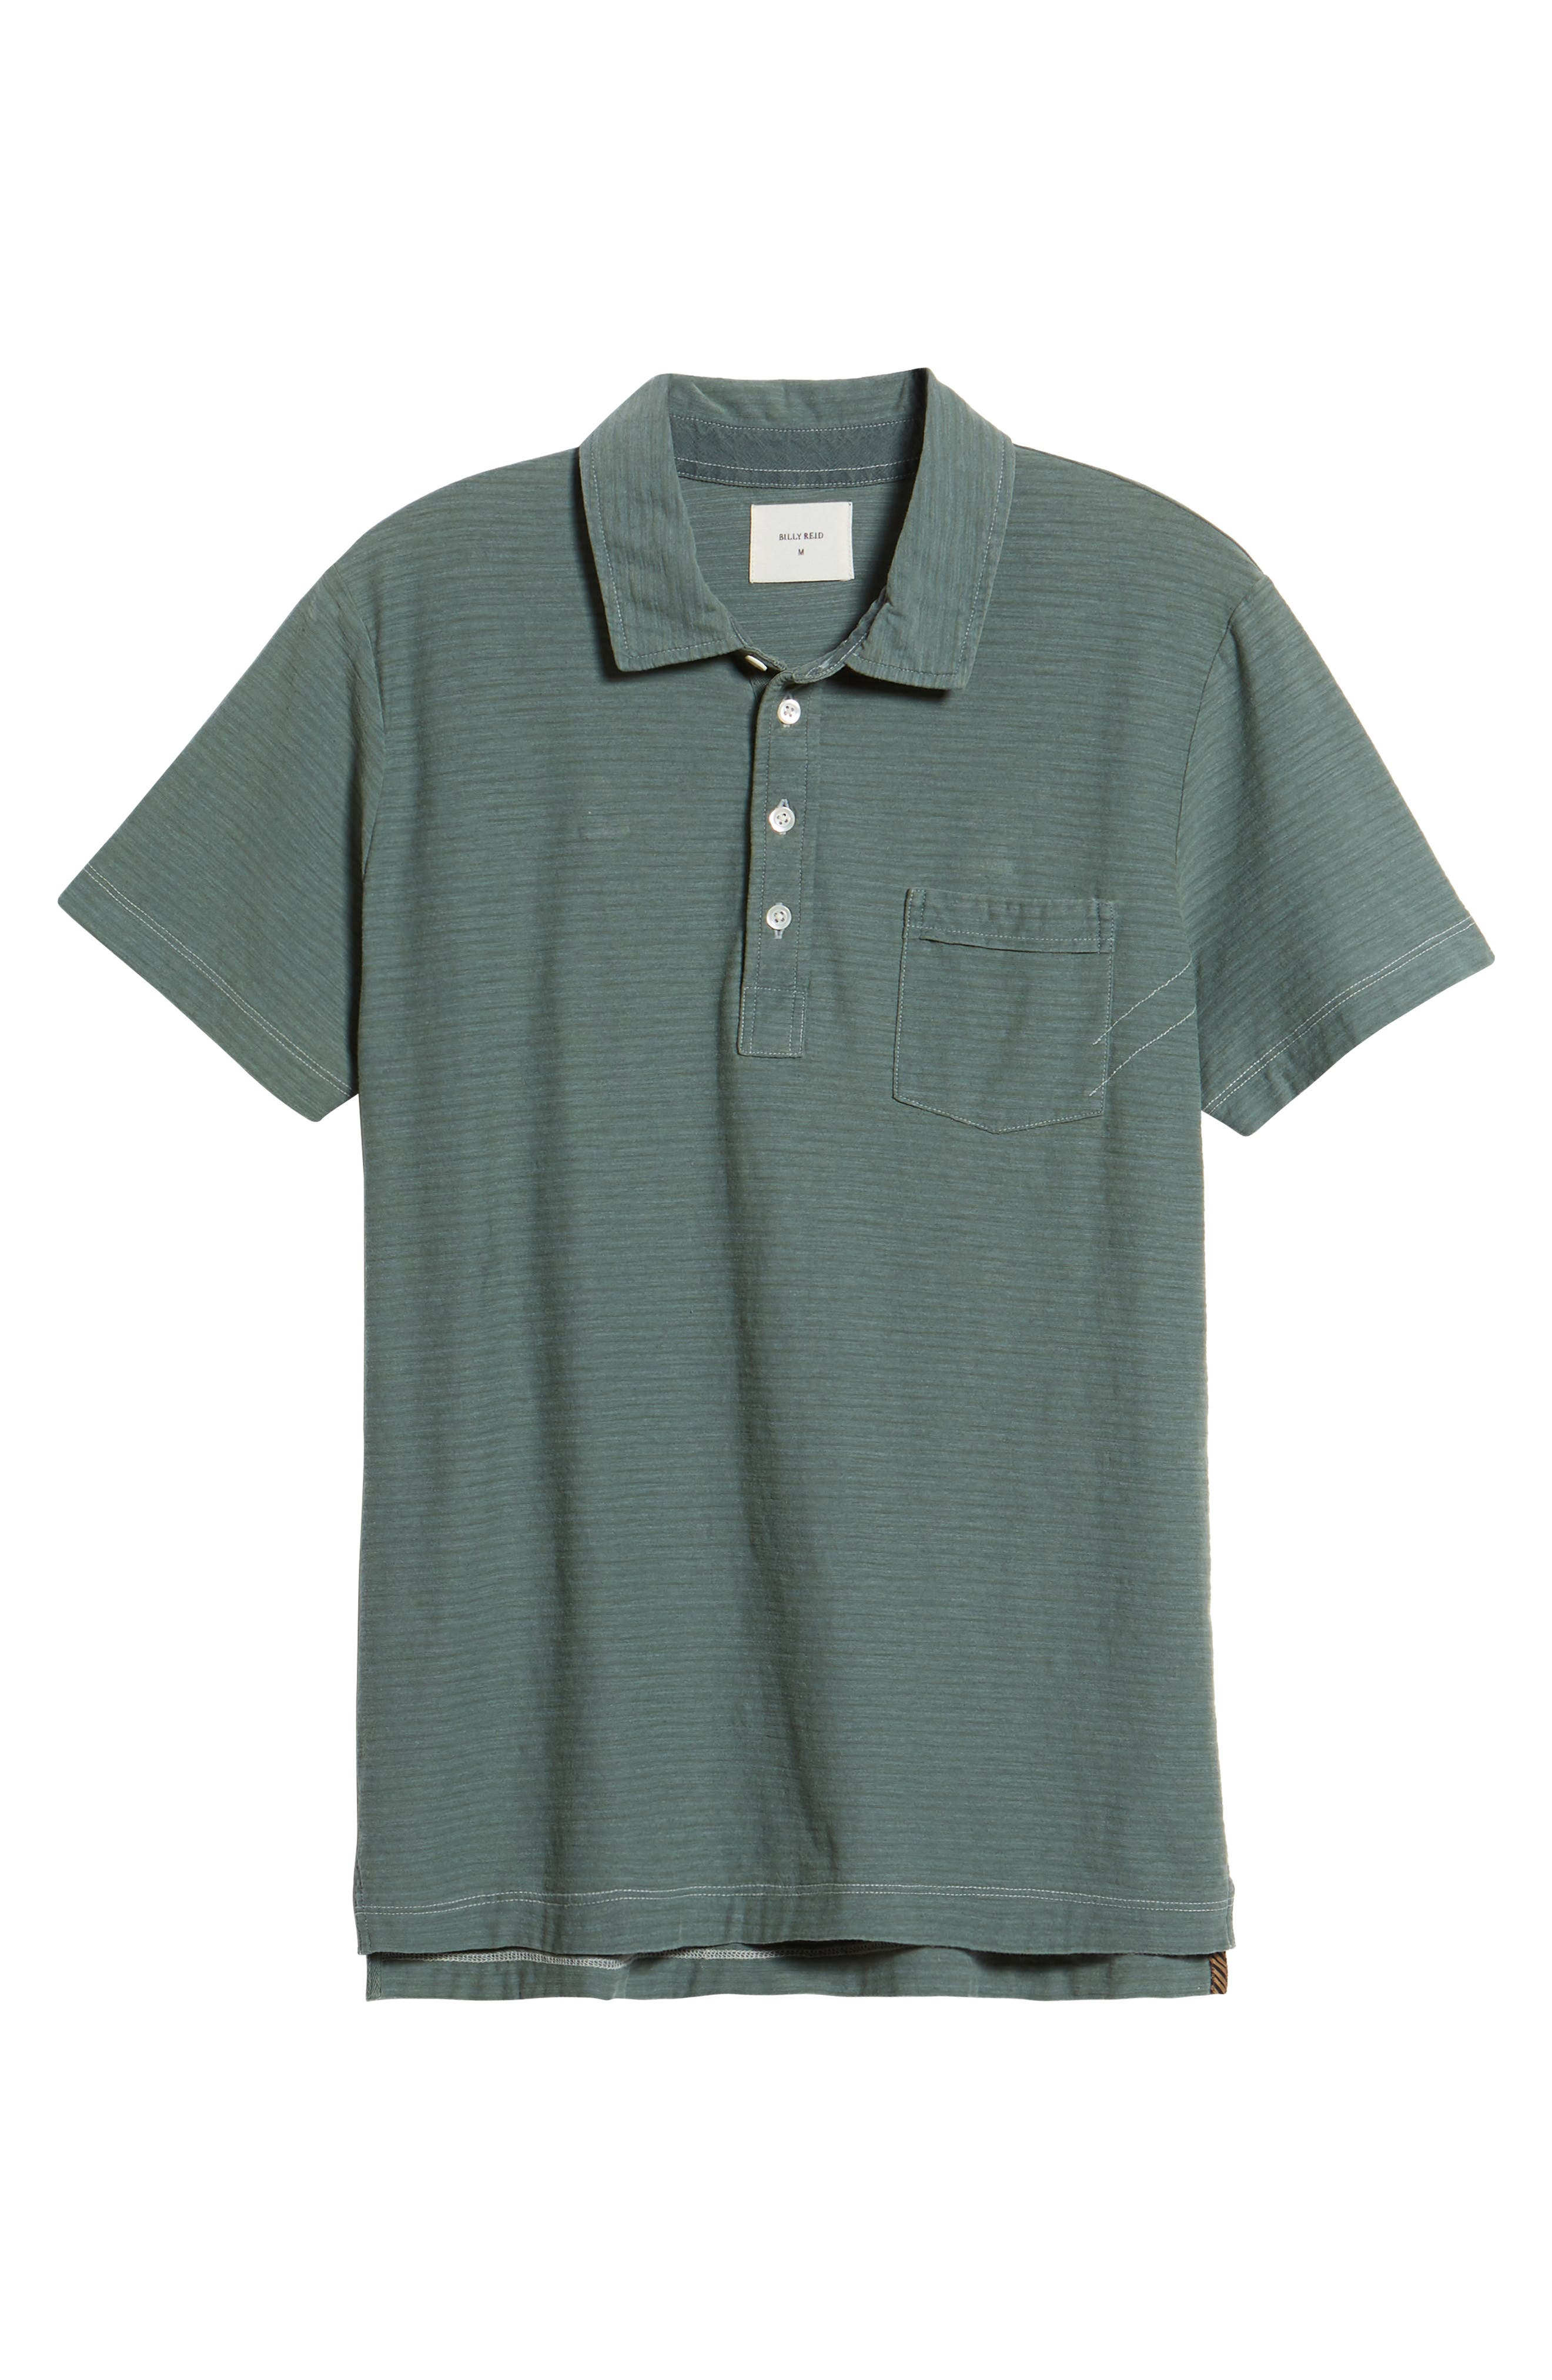 Pensacola Cotton Blend Polo Shirt,                             Alternate thumbnail 6, color,                             387